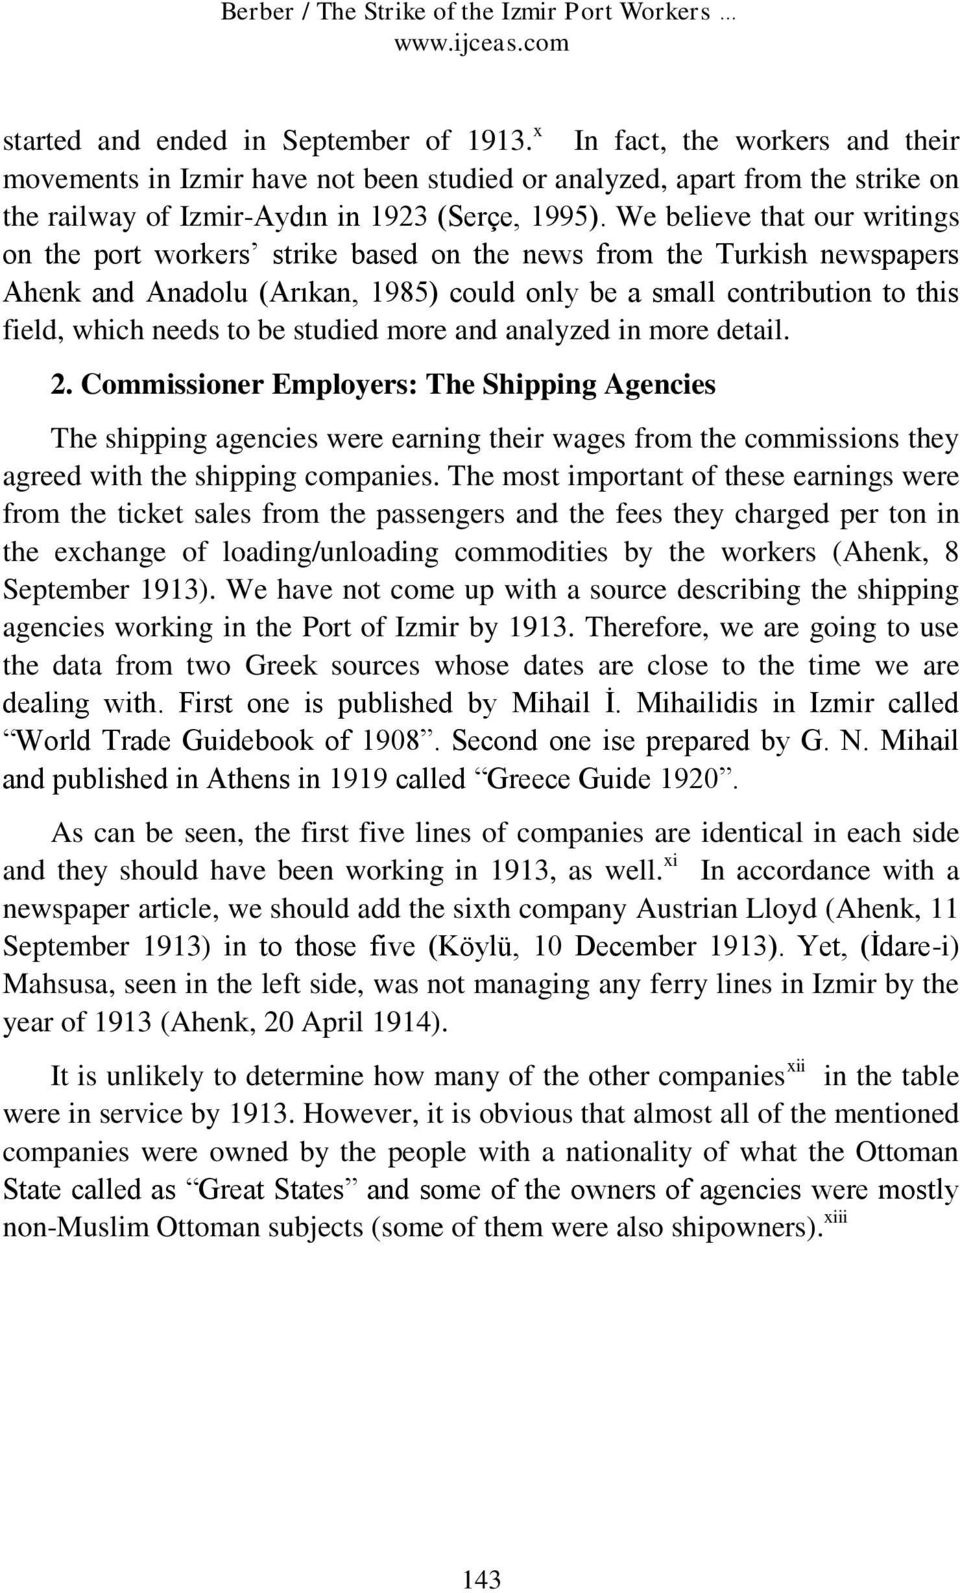 We believe that our writings on the port workers strike based on the news from the Turkish newspapers Ahenk and Anadolu (Arıkan, 1985) could only be a small contribution to this field, which needs to